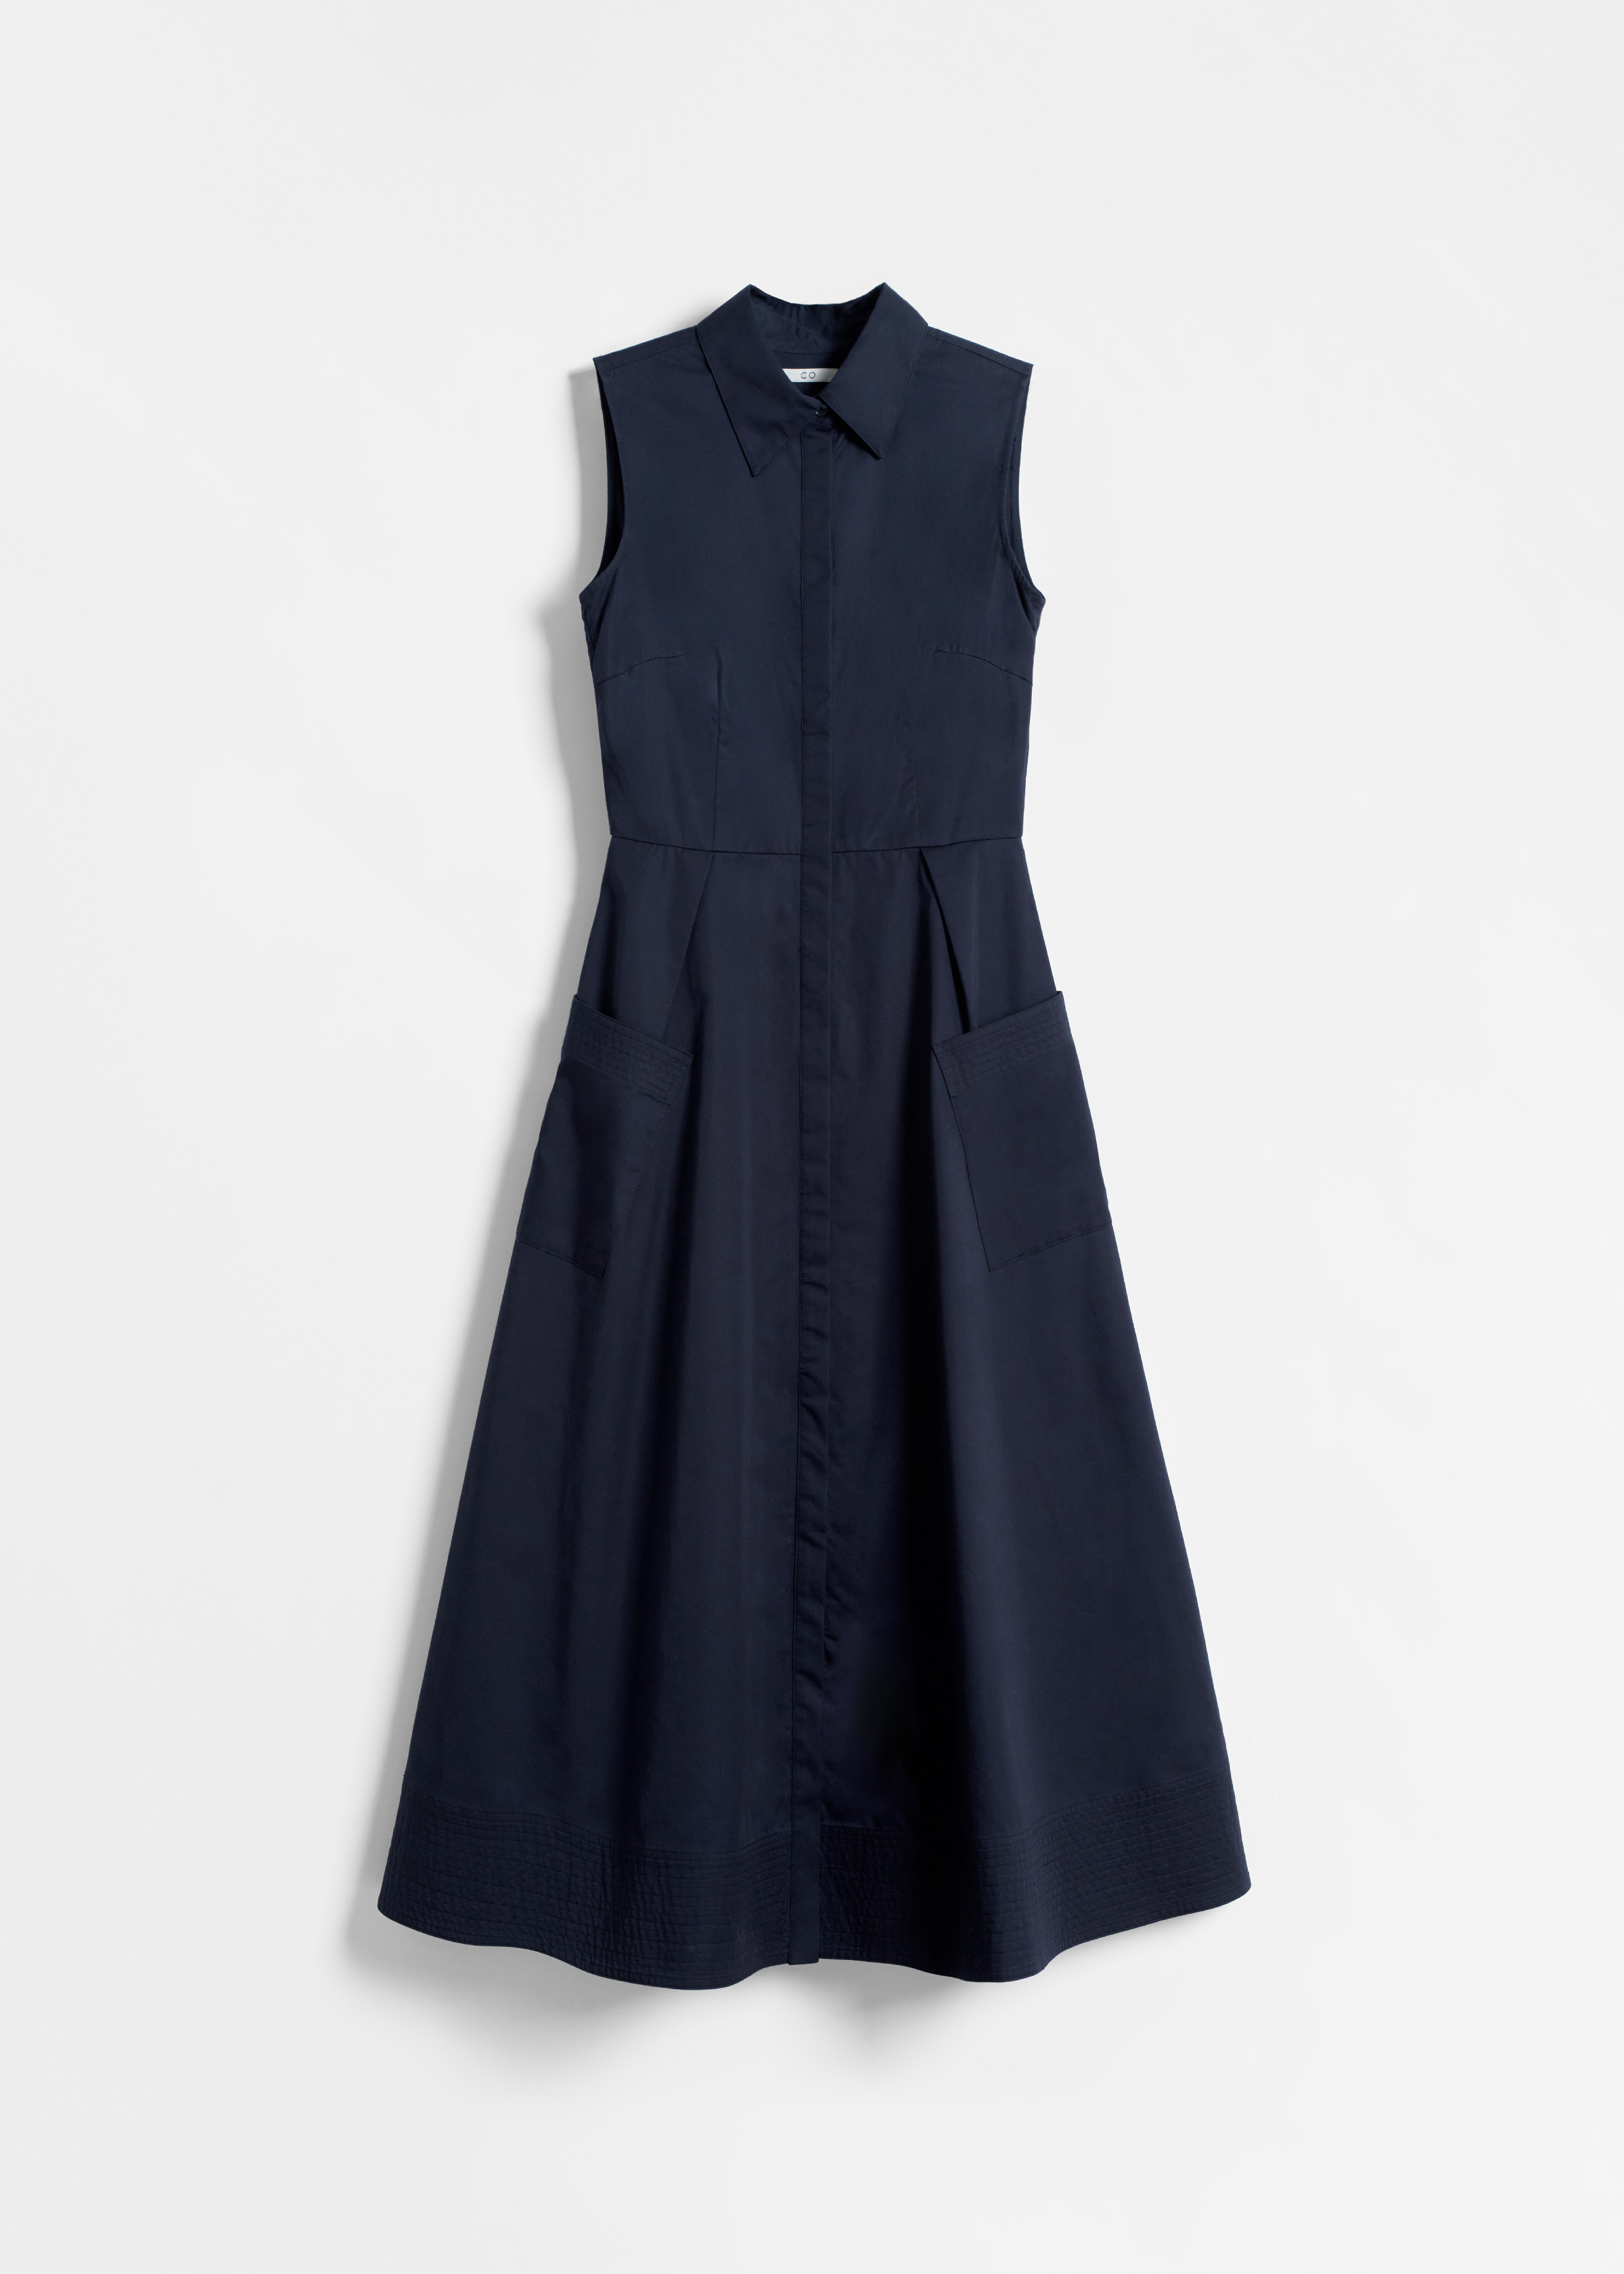 Sleeveless Button Down Dress - Taupe in Navy by Co Collections